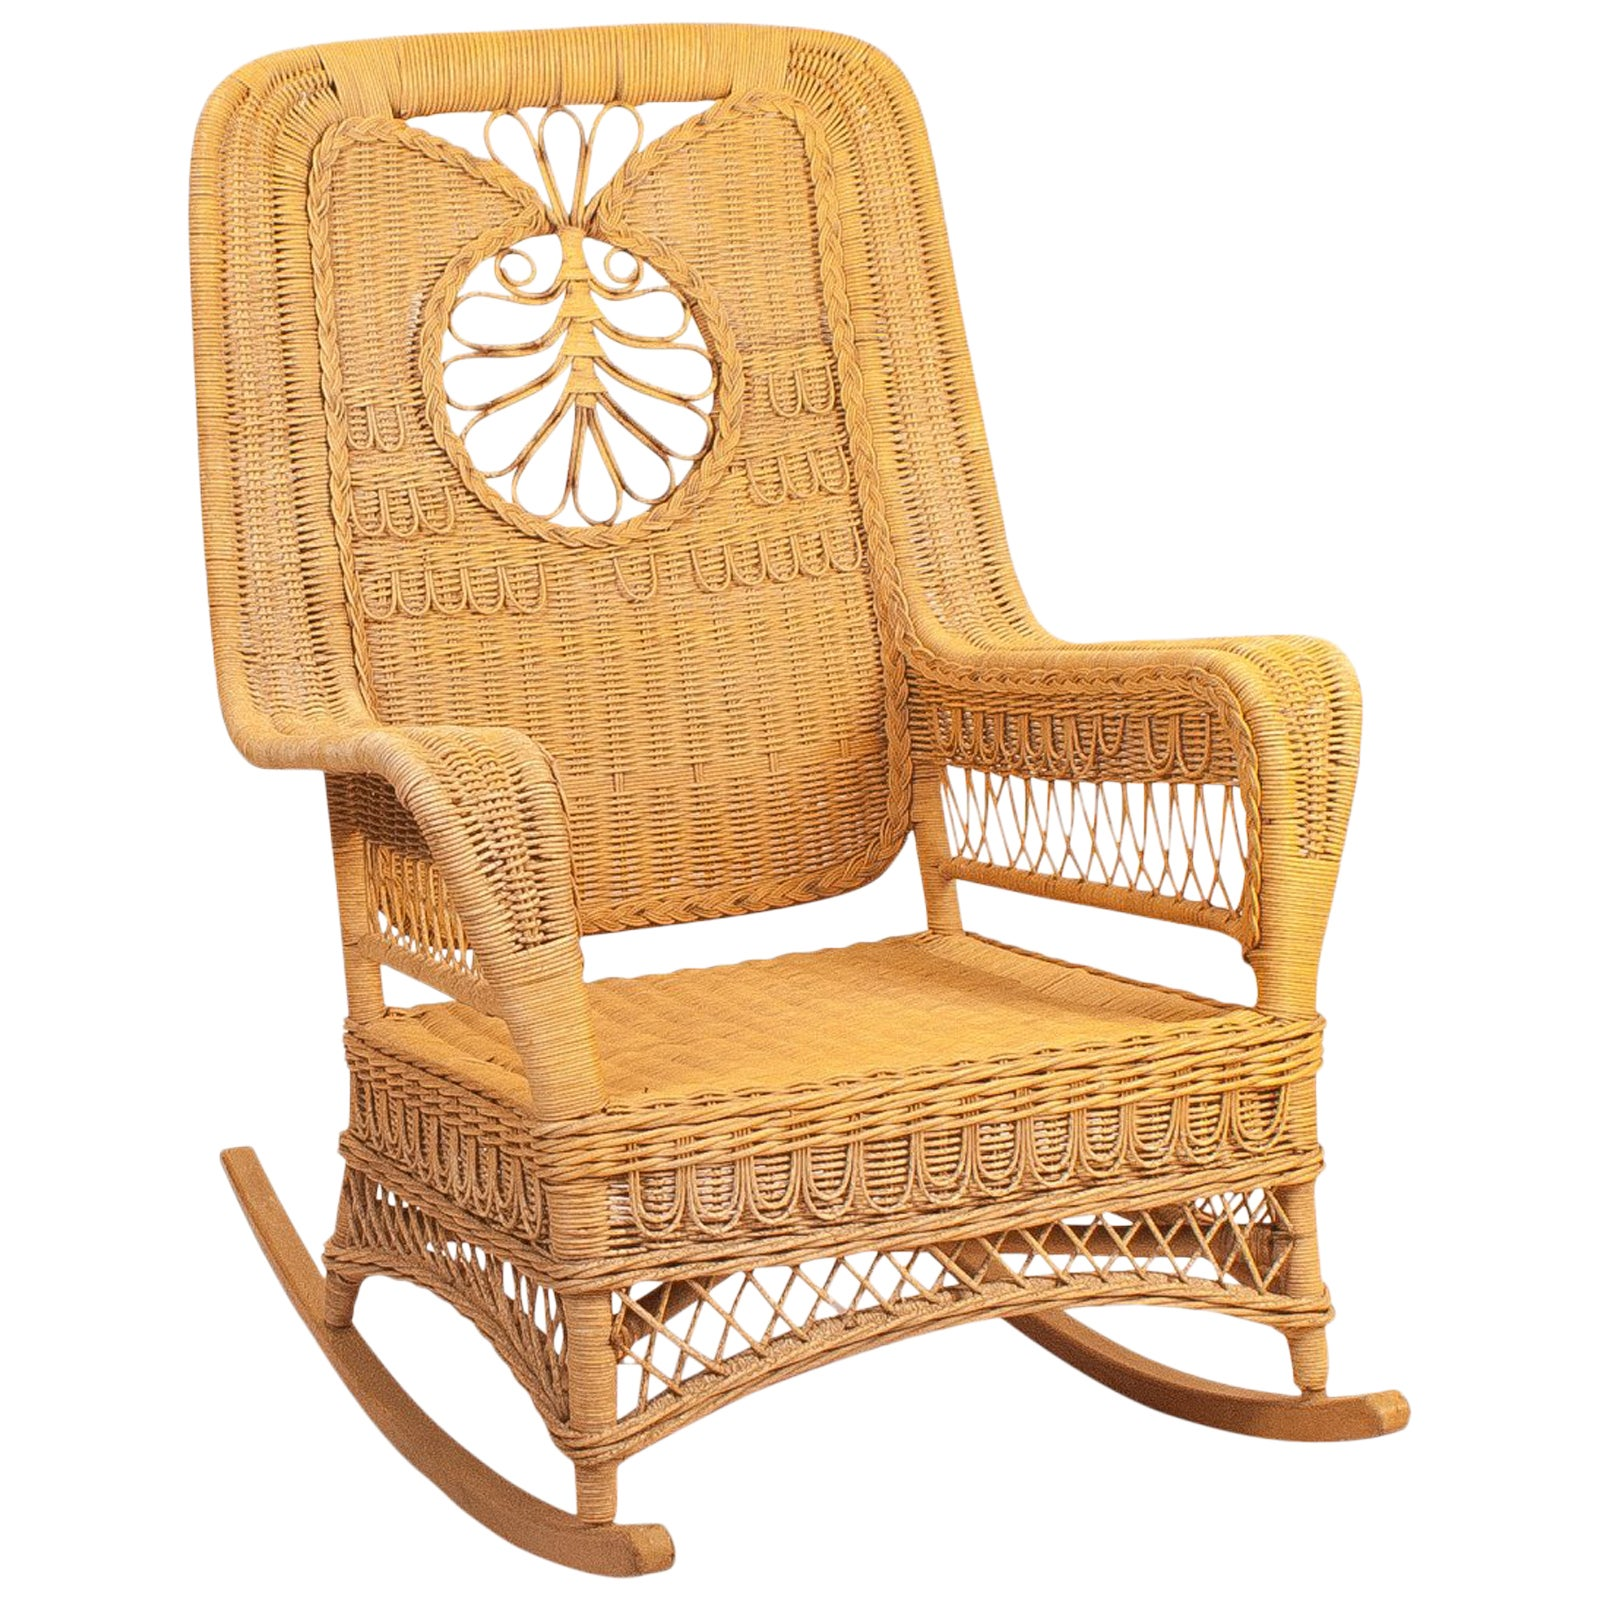 Wicker Rocking Chair Vintage Hawaiian Wicker Rocking Chair 1950s